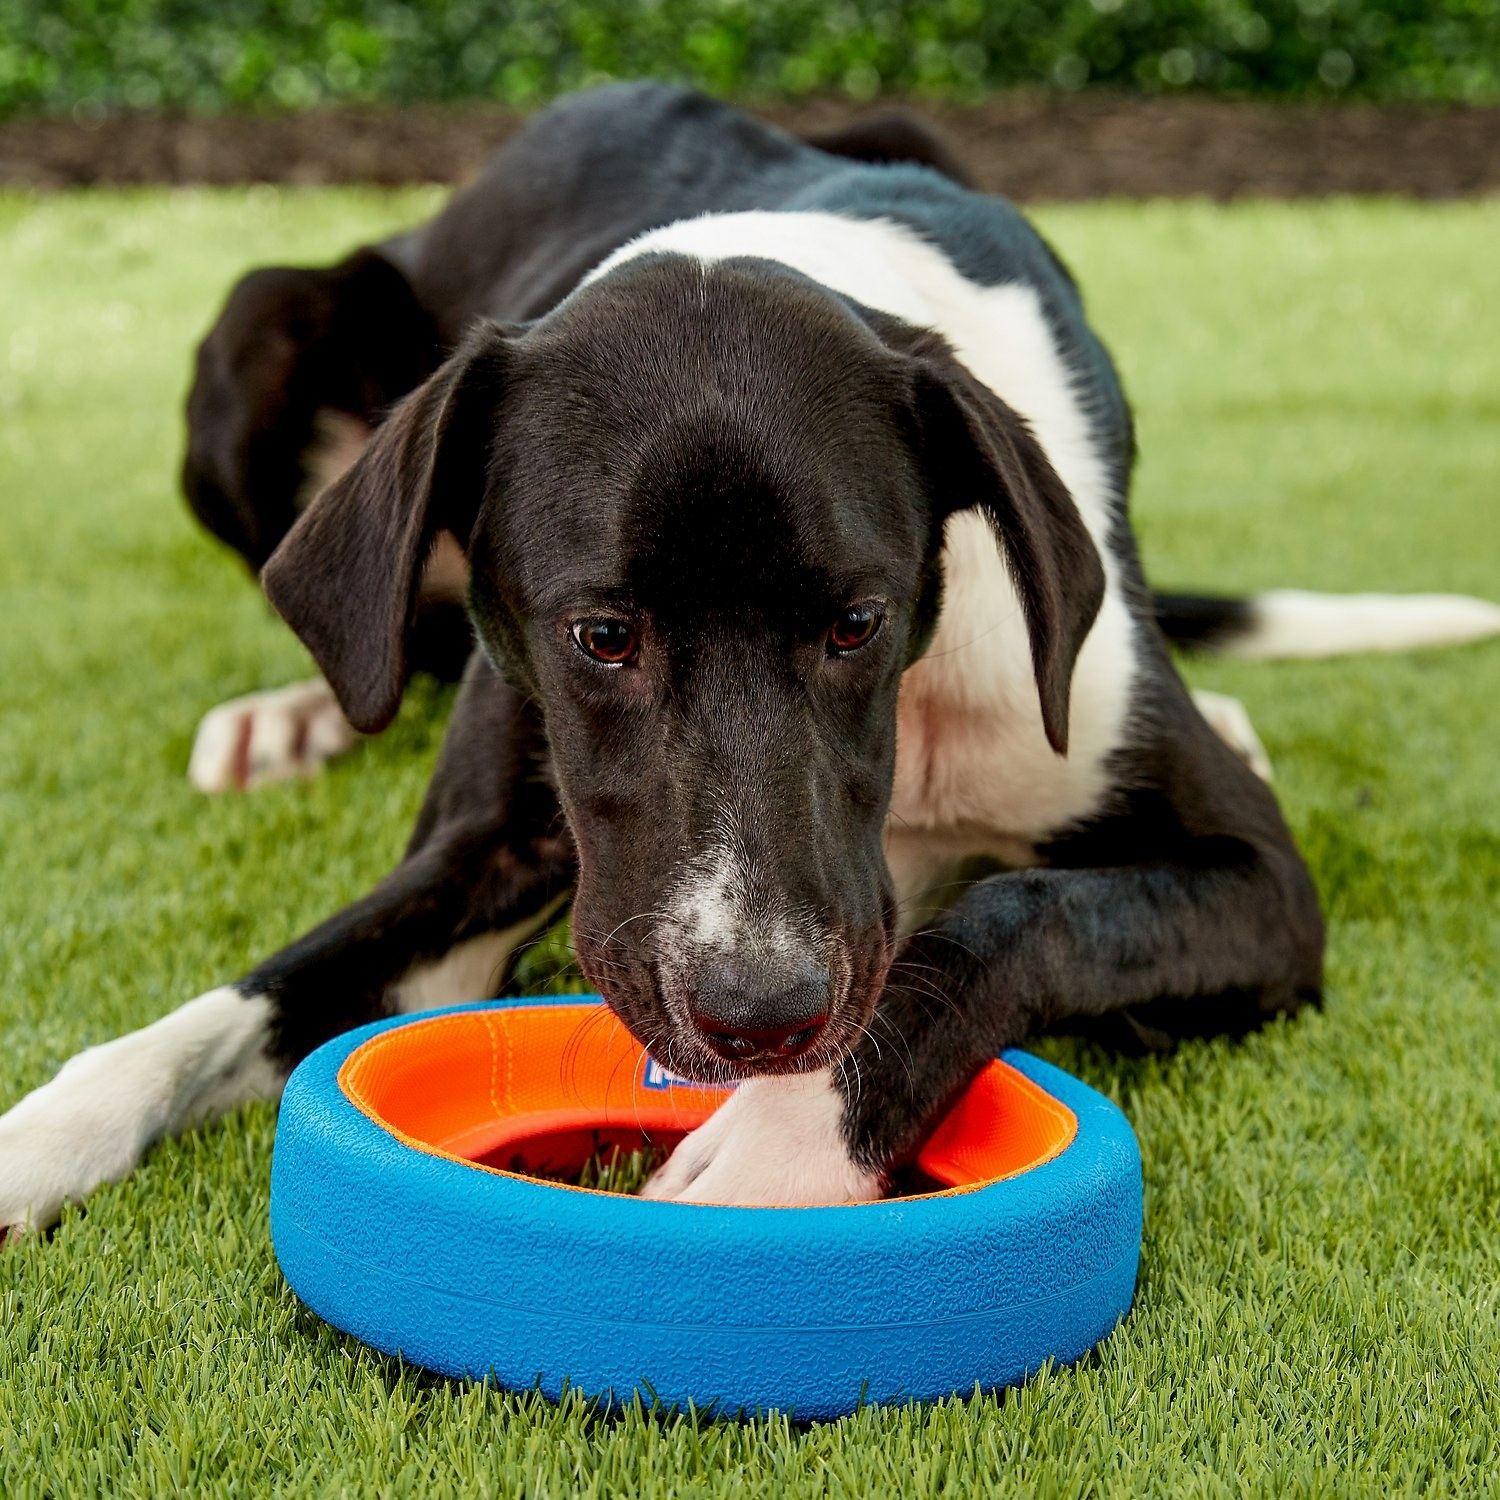 A large dog with a big, thick wheel-shaped chew toy